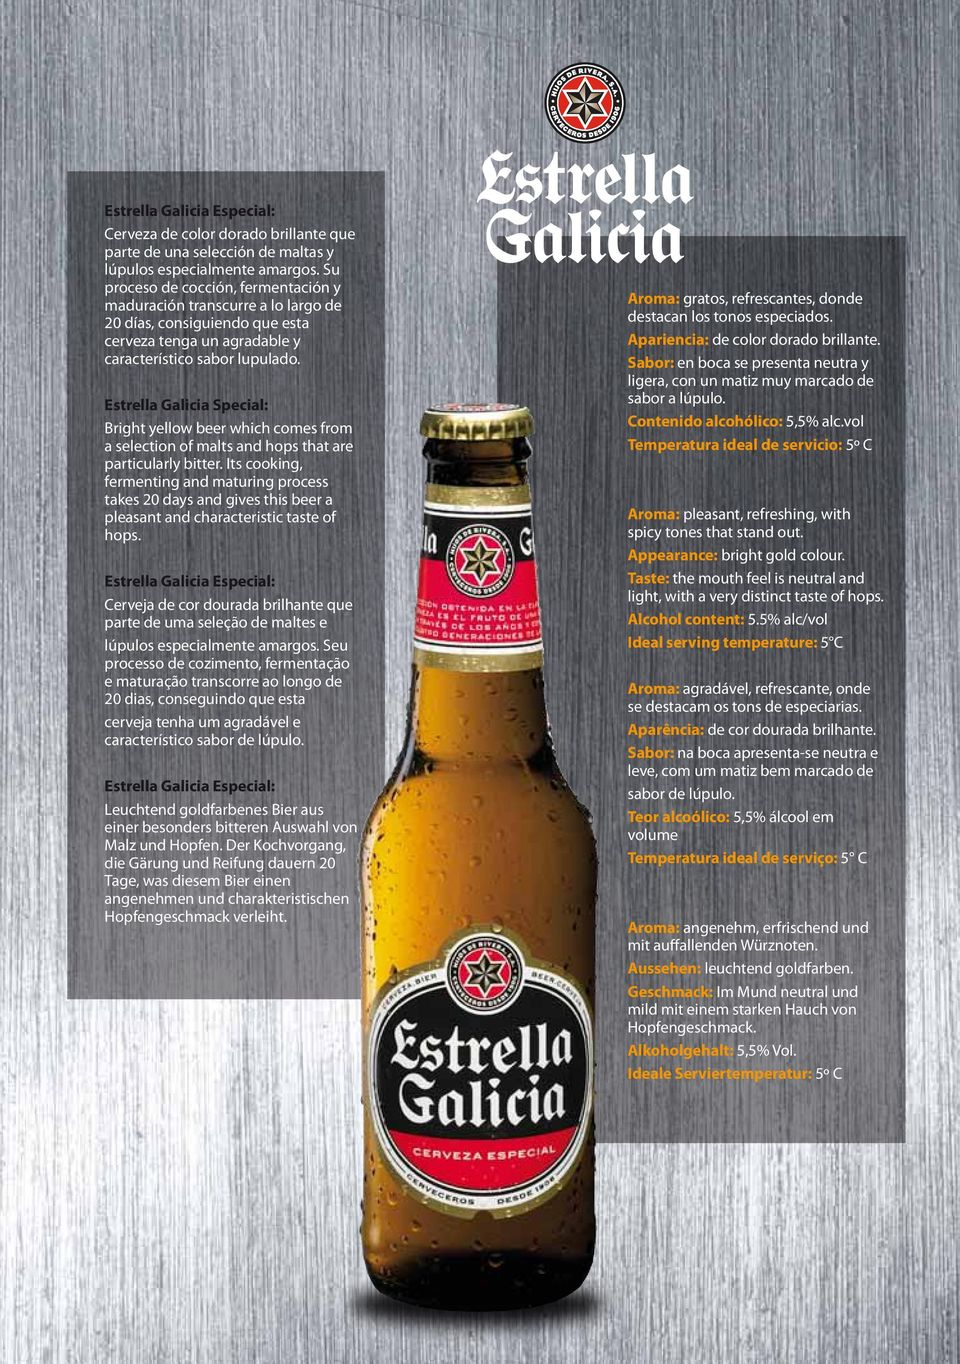 Estrella Galicia Special: Bright yellow beer which comes from a selection of malts and hops that are particularly bitter.